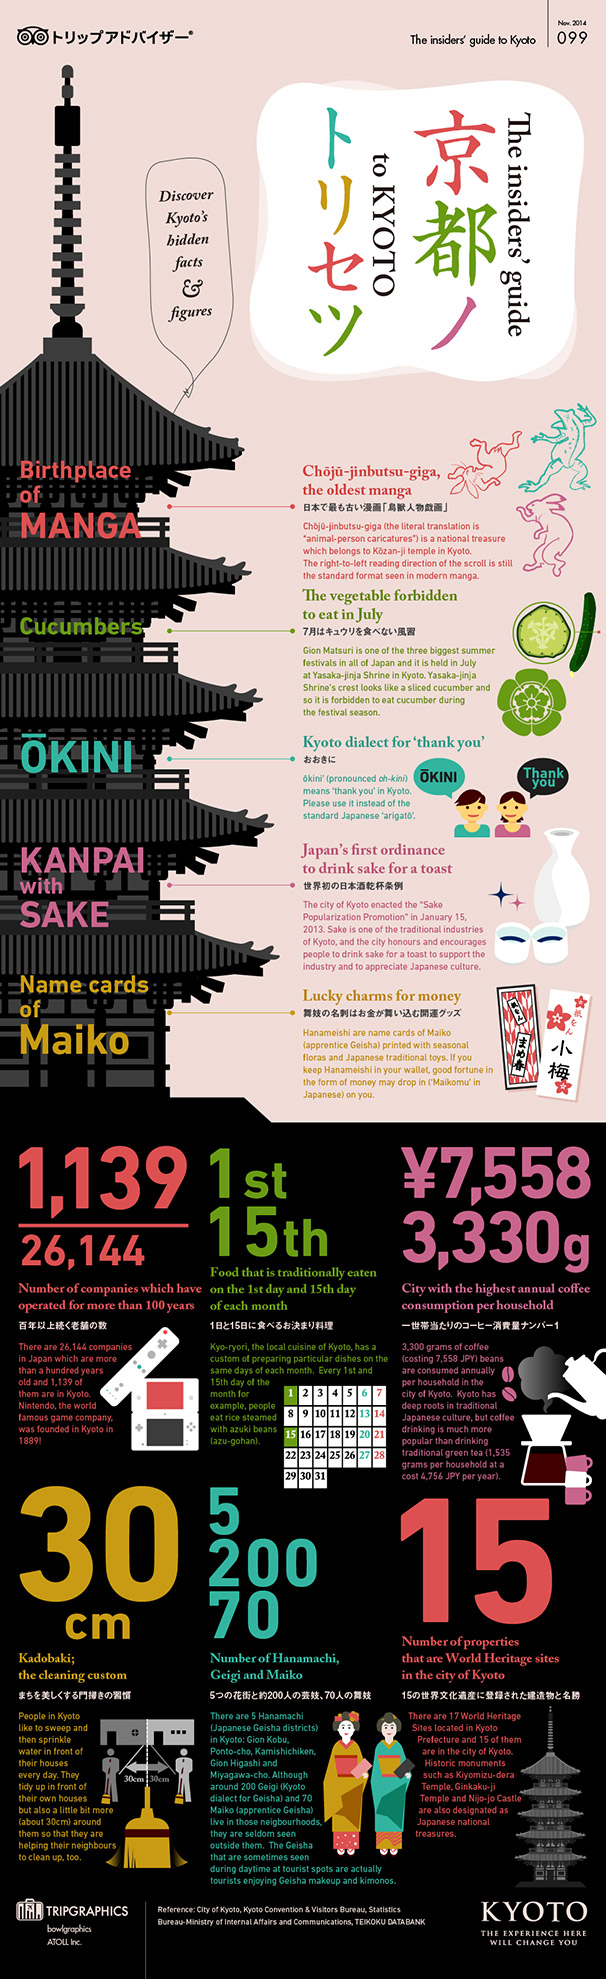 kyoto, tourism, japan, history, infographic